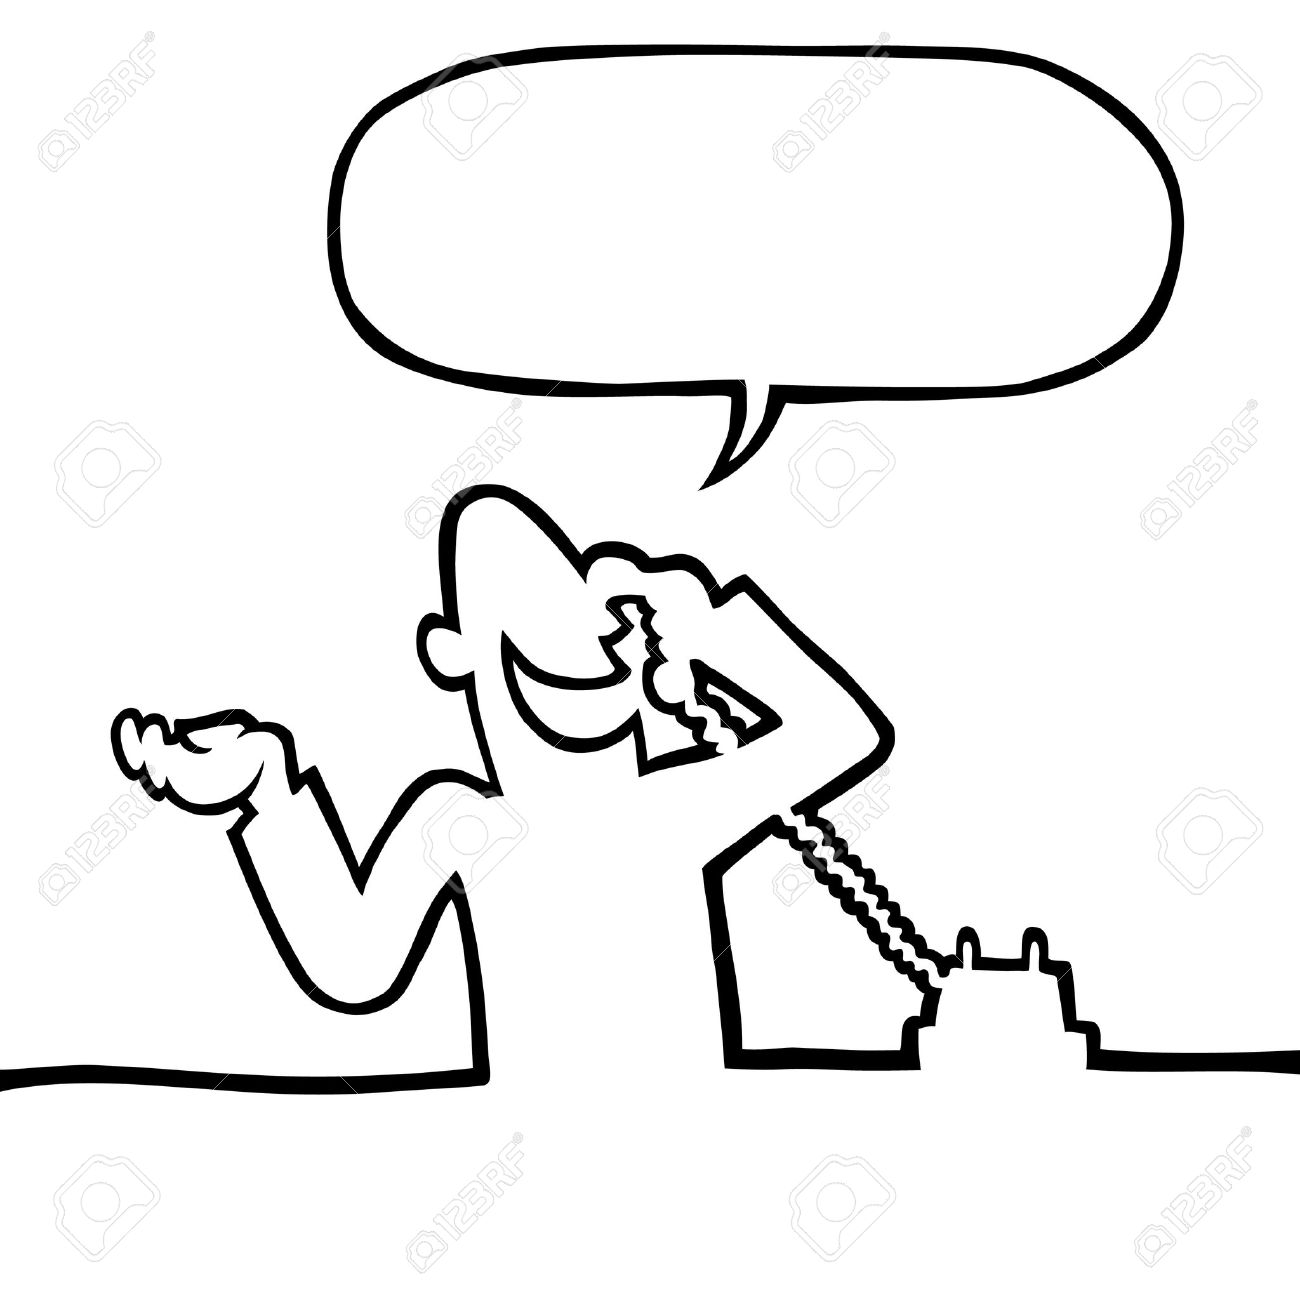 Black and white line drawing of a person having a conversation on the phone. Stock Vector - 7863566